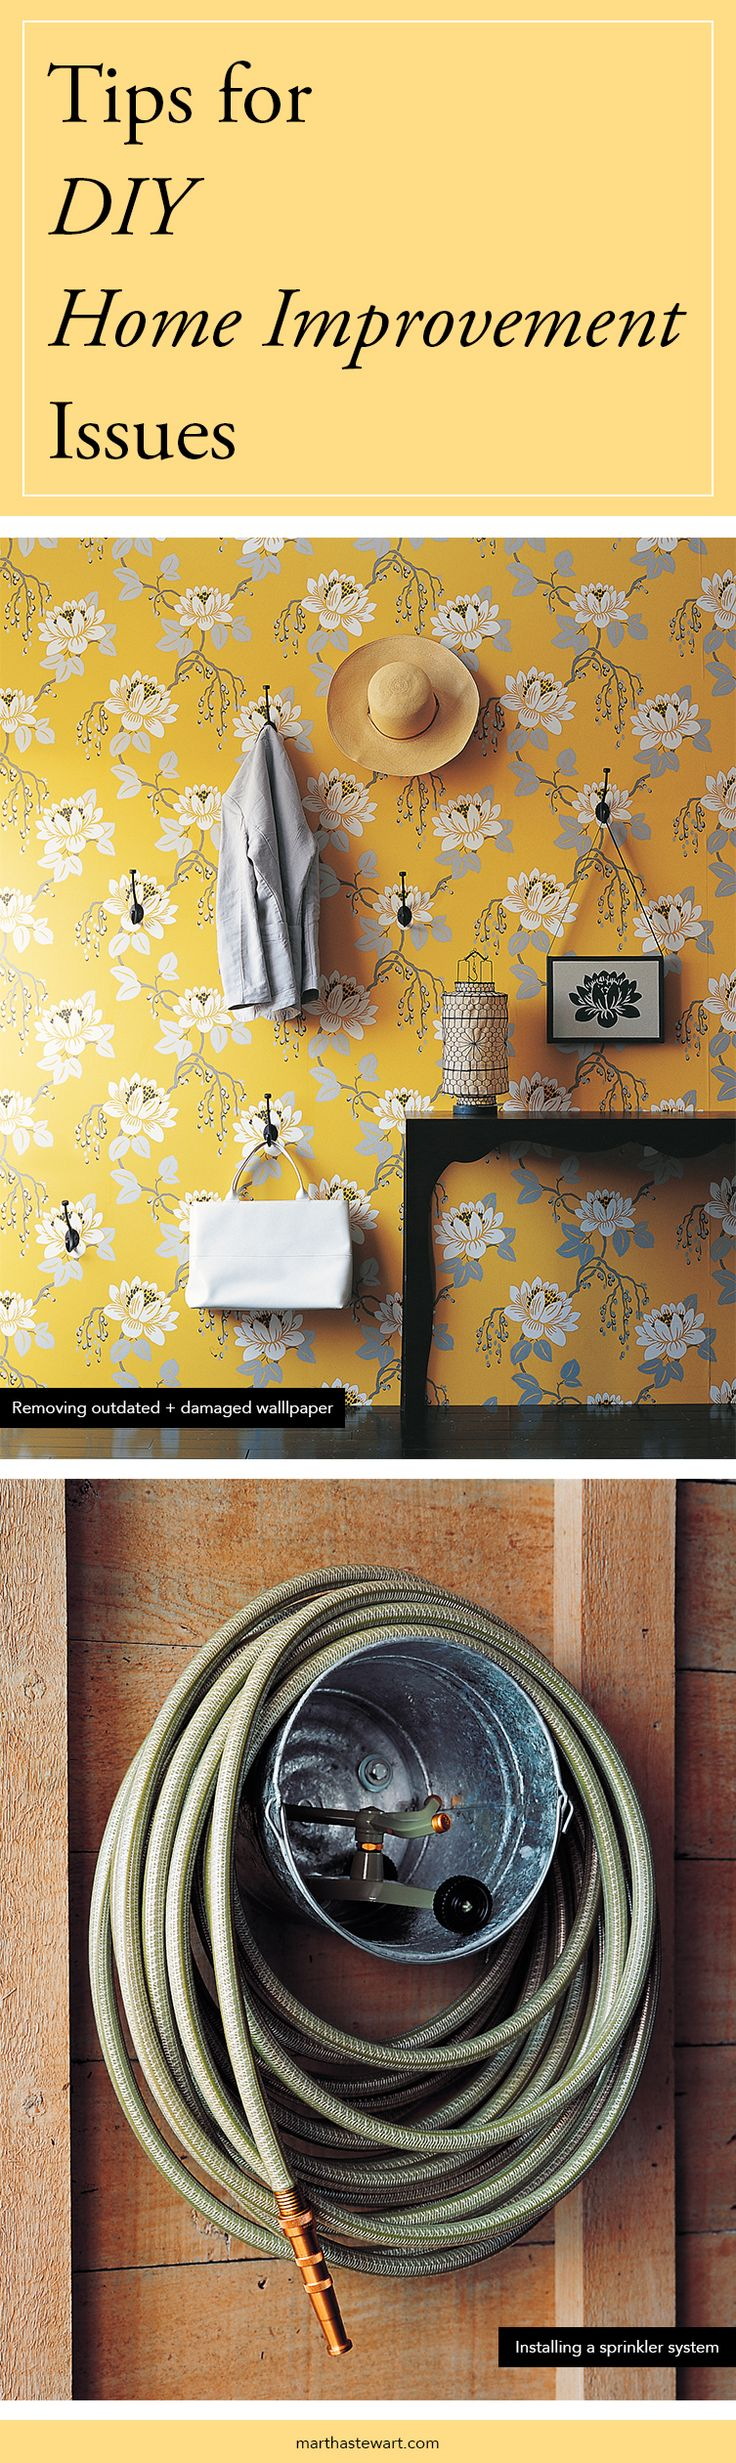 Diy home decor wallpaper of the 80s - Home room ideas